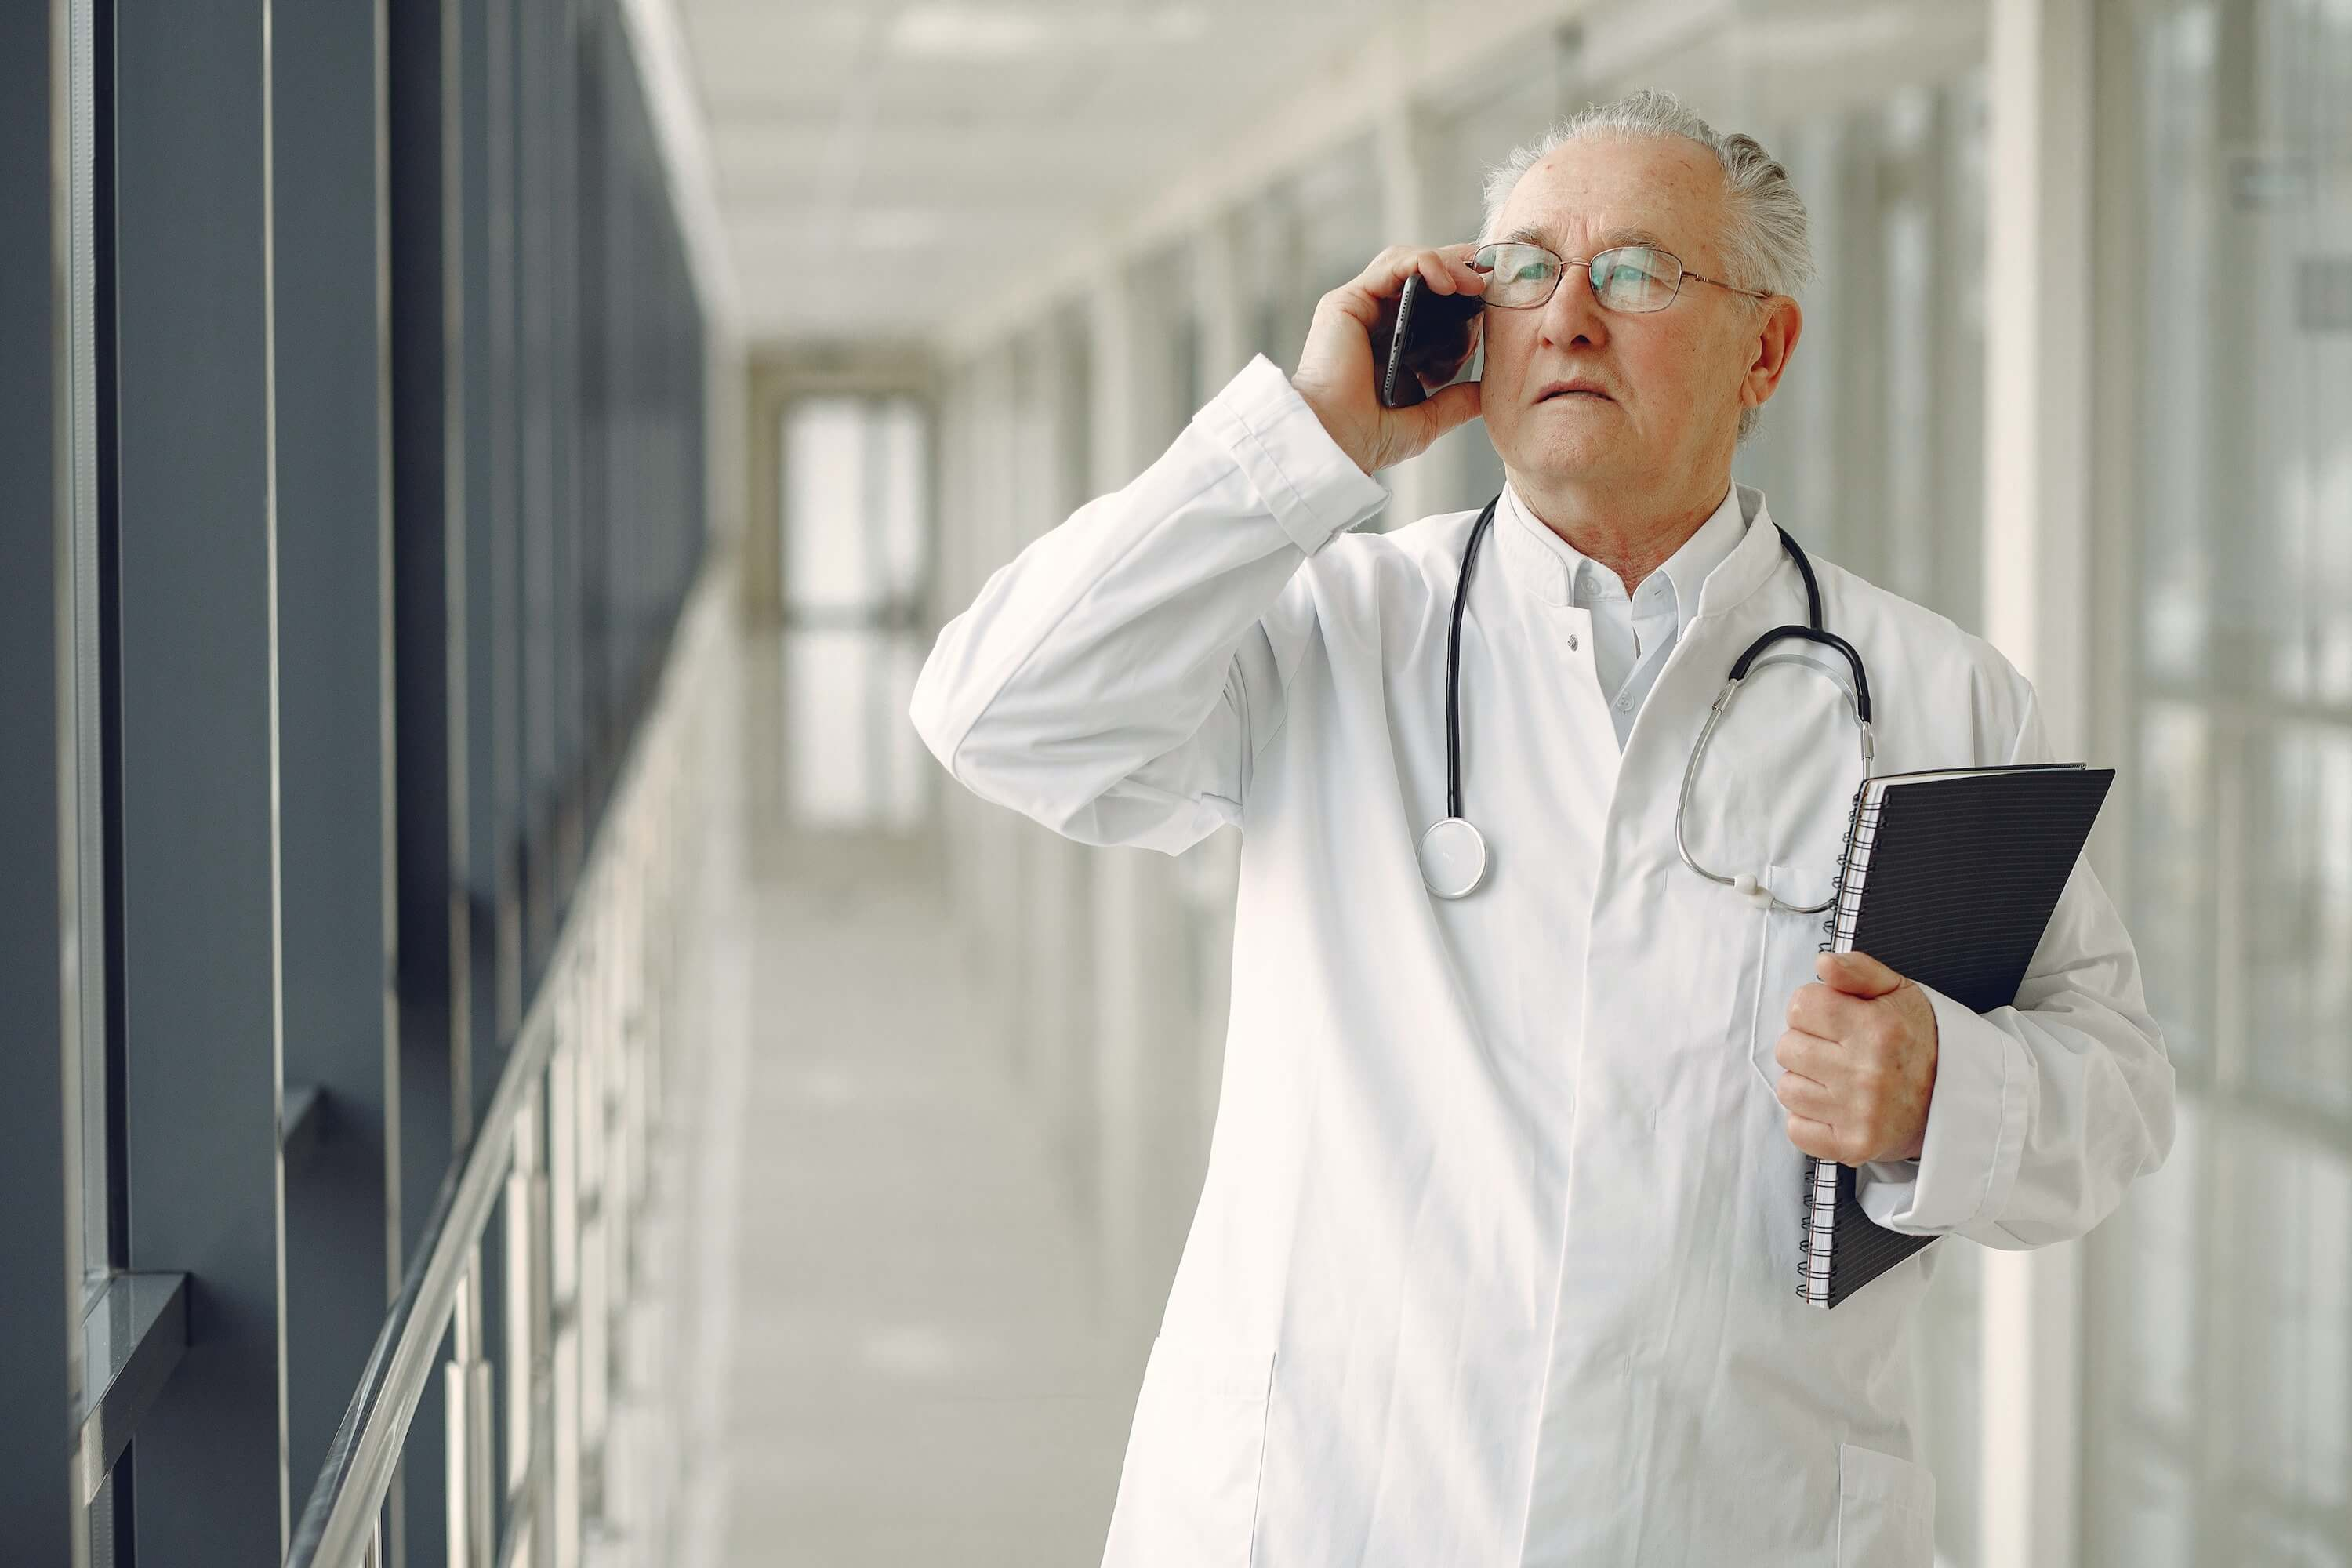 doctor in medical uniform talking on mobile phone in clinic